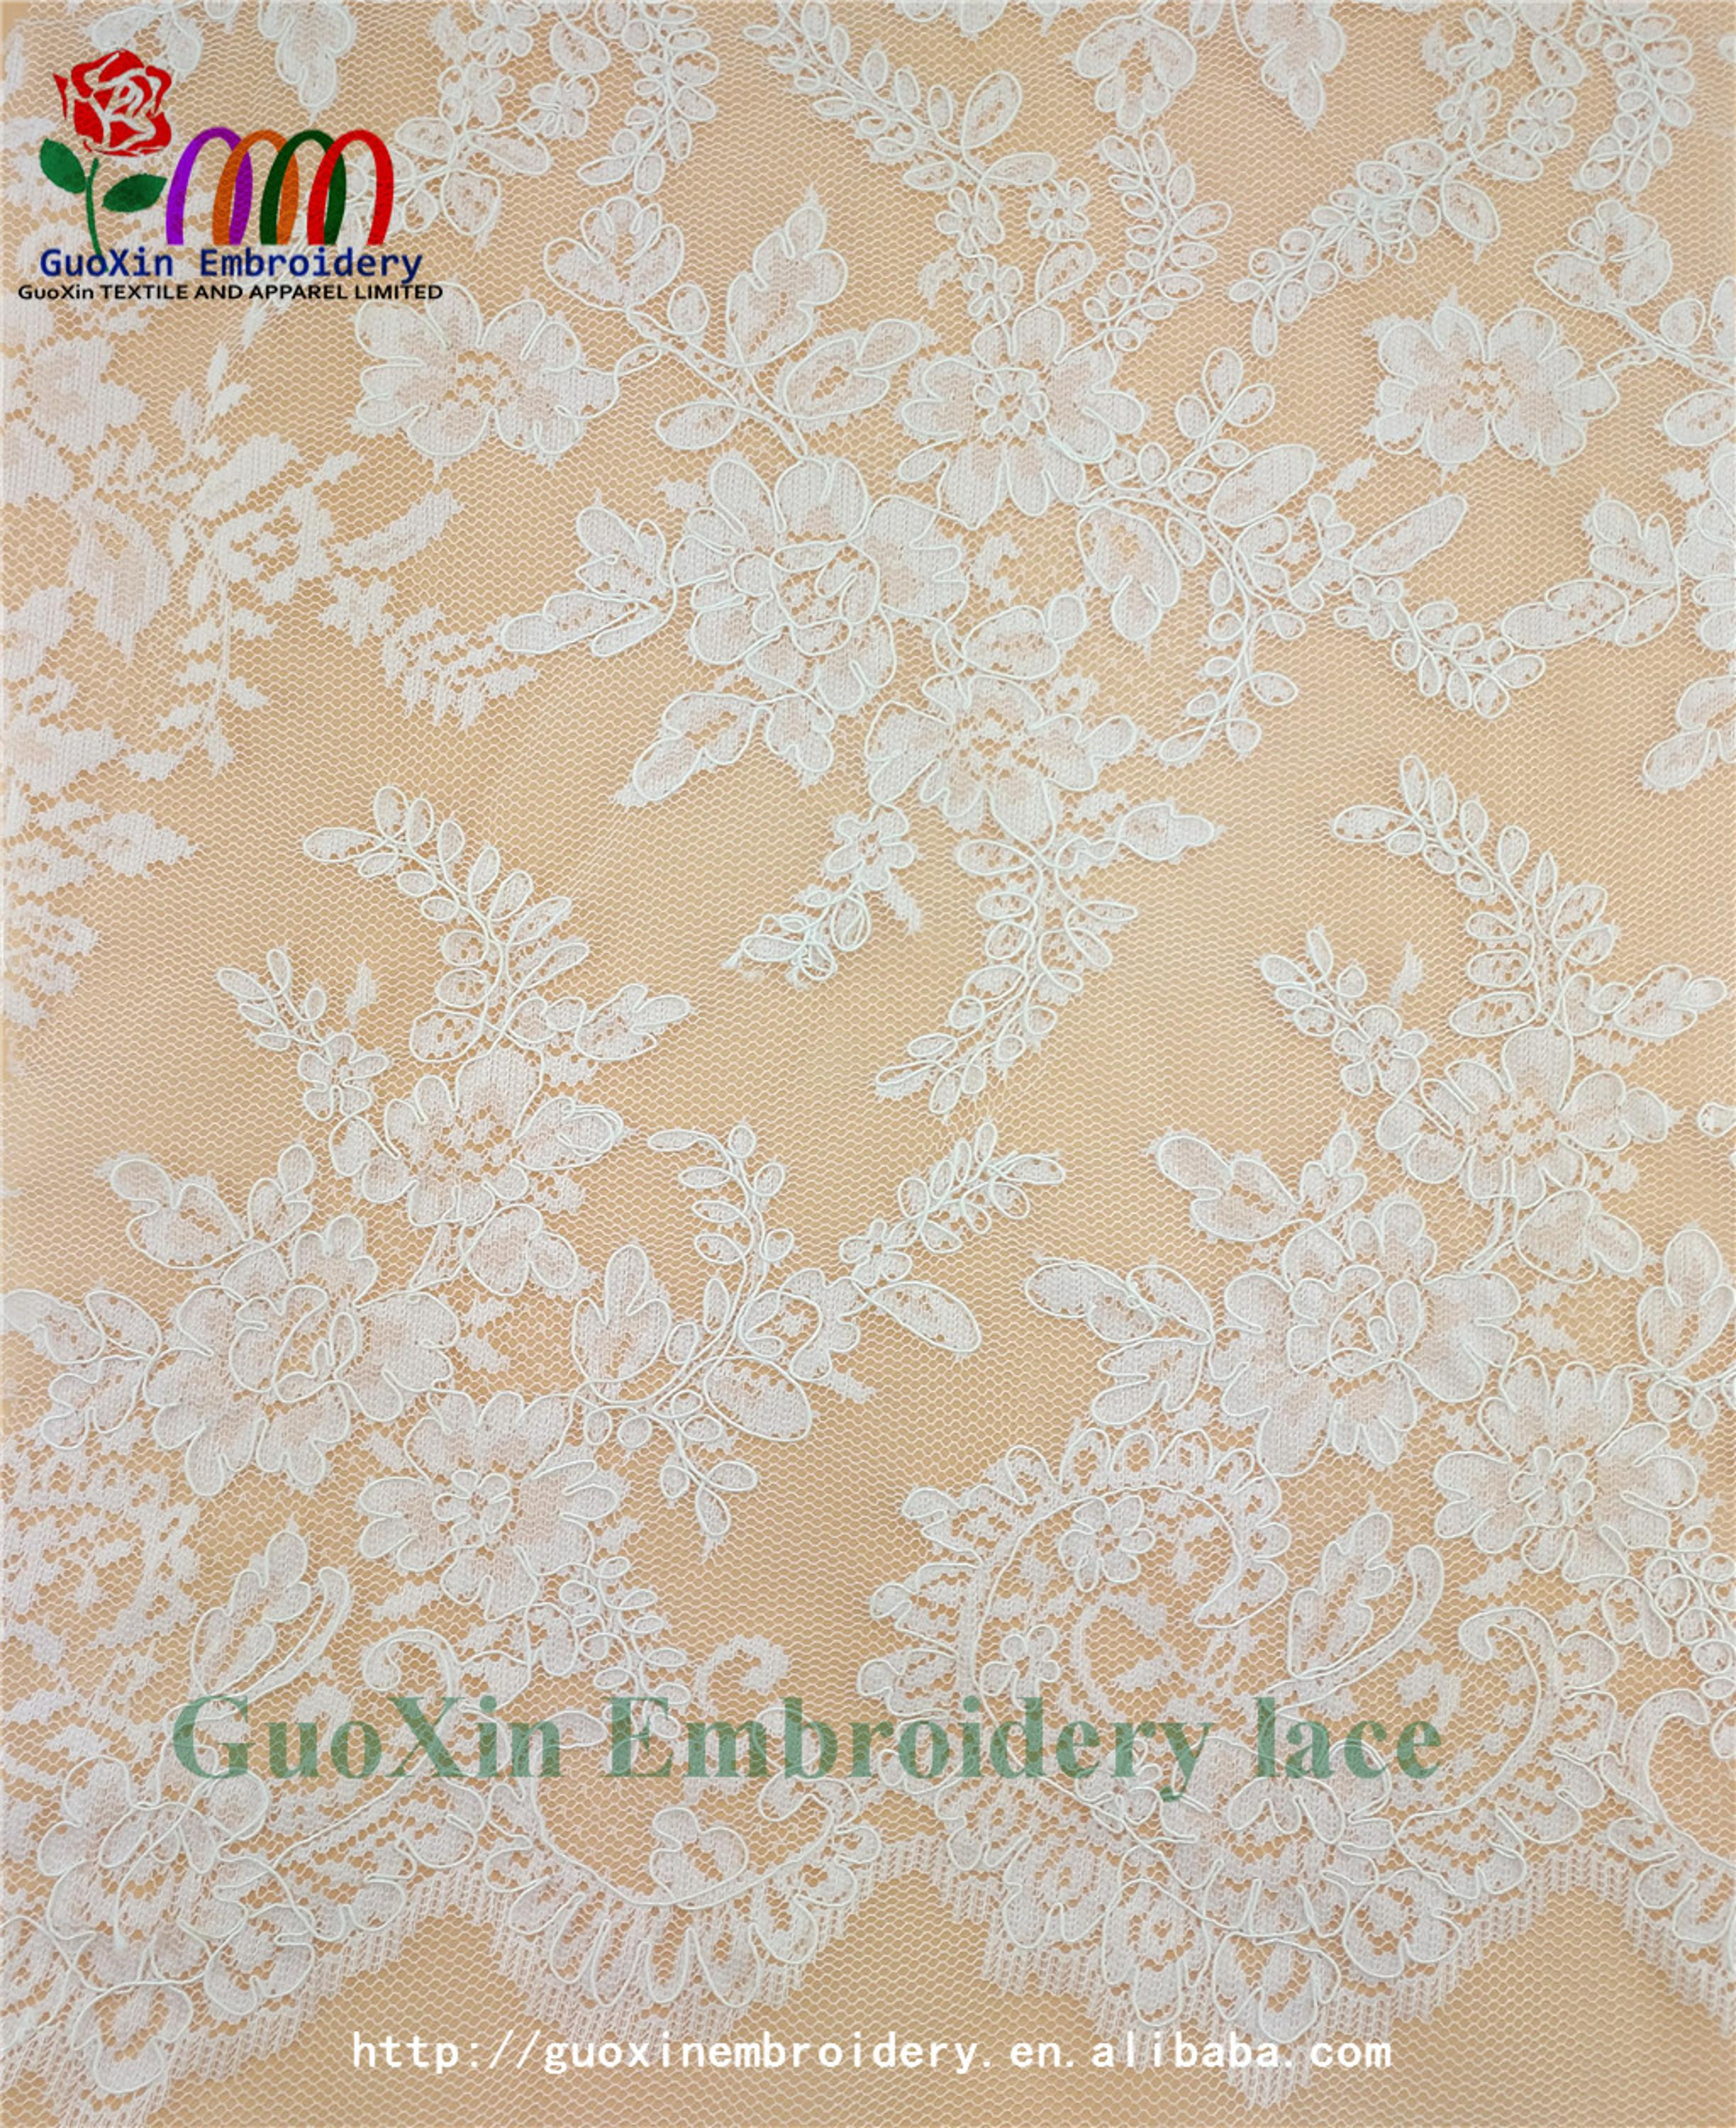 high quality designer bridal sarees image lace embroidery lace fabric with cording (4).jpg